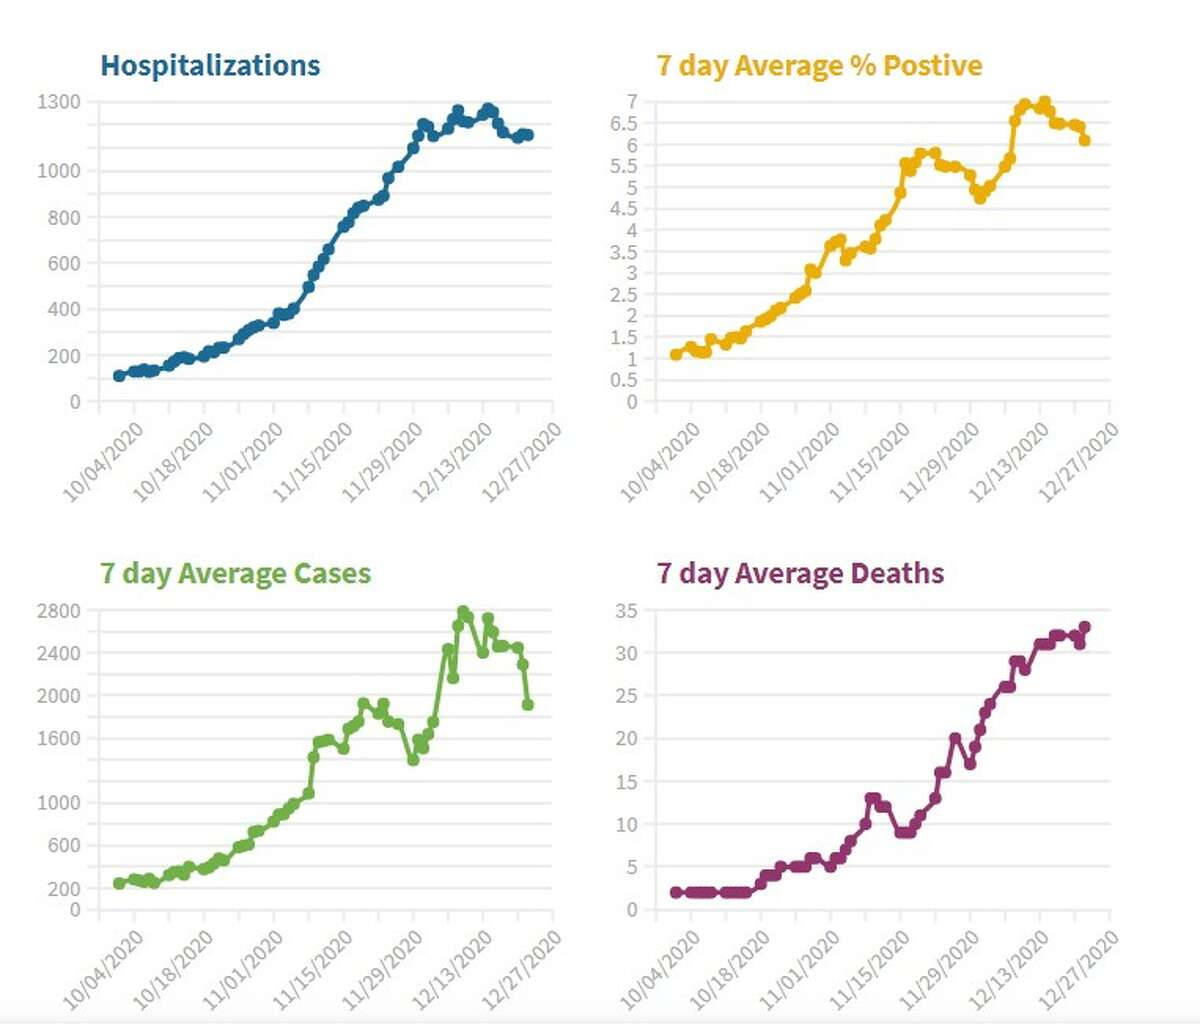 Charts show the average numbers of hospitalizations, COVID-19 cases and COVID-19-related deaths in Connecticut, as well as the average positivity rate in tests taken between October and December 2020.